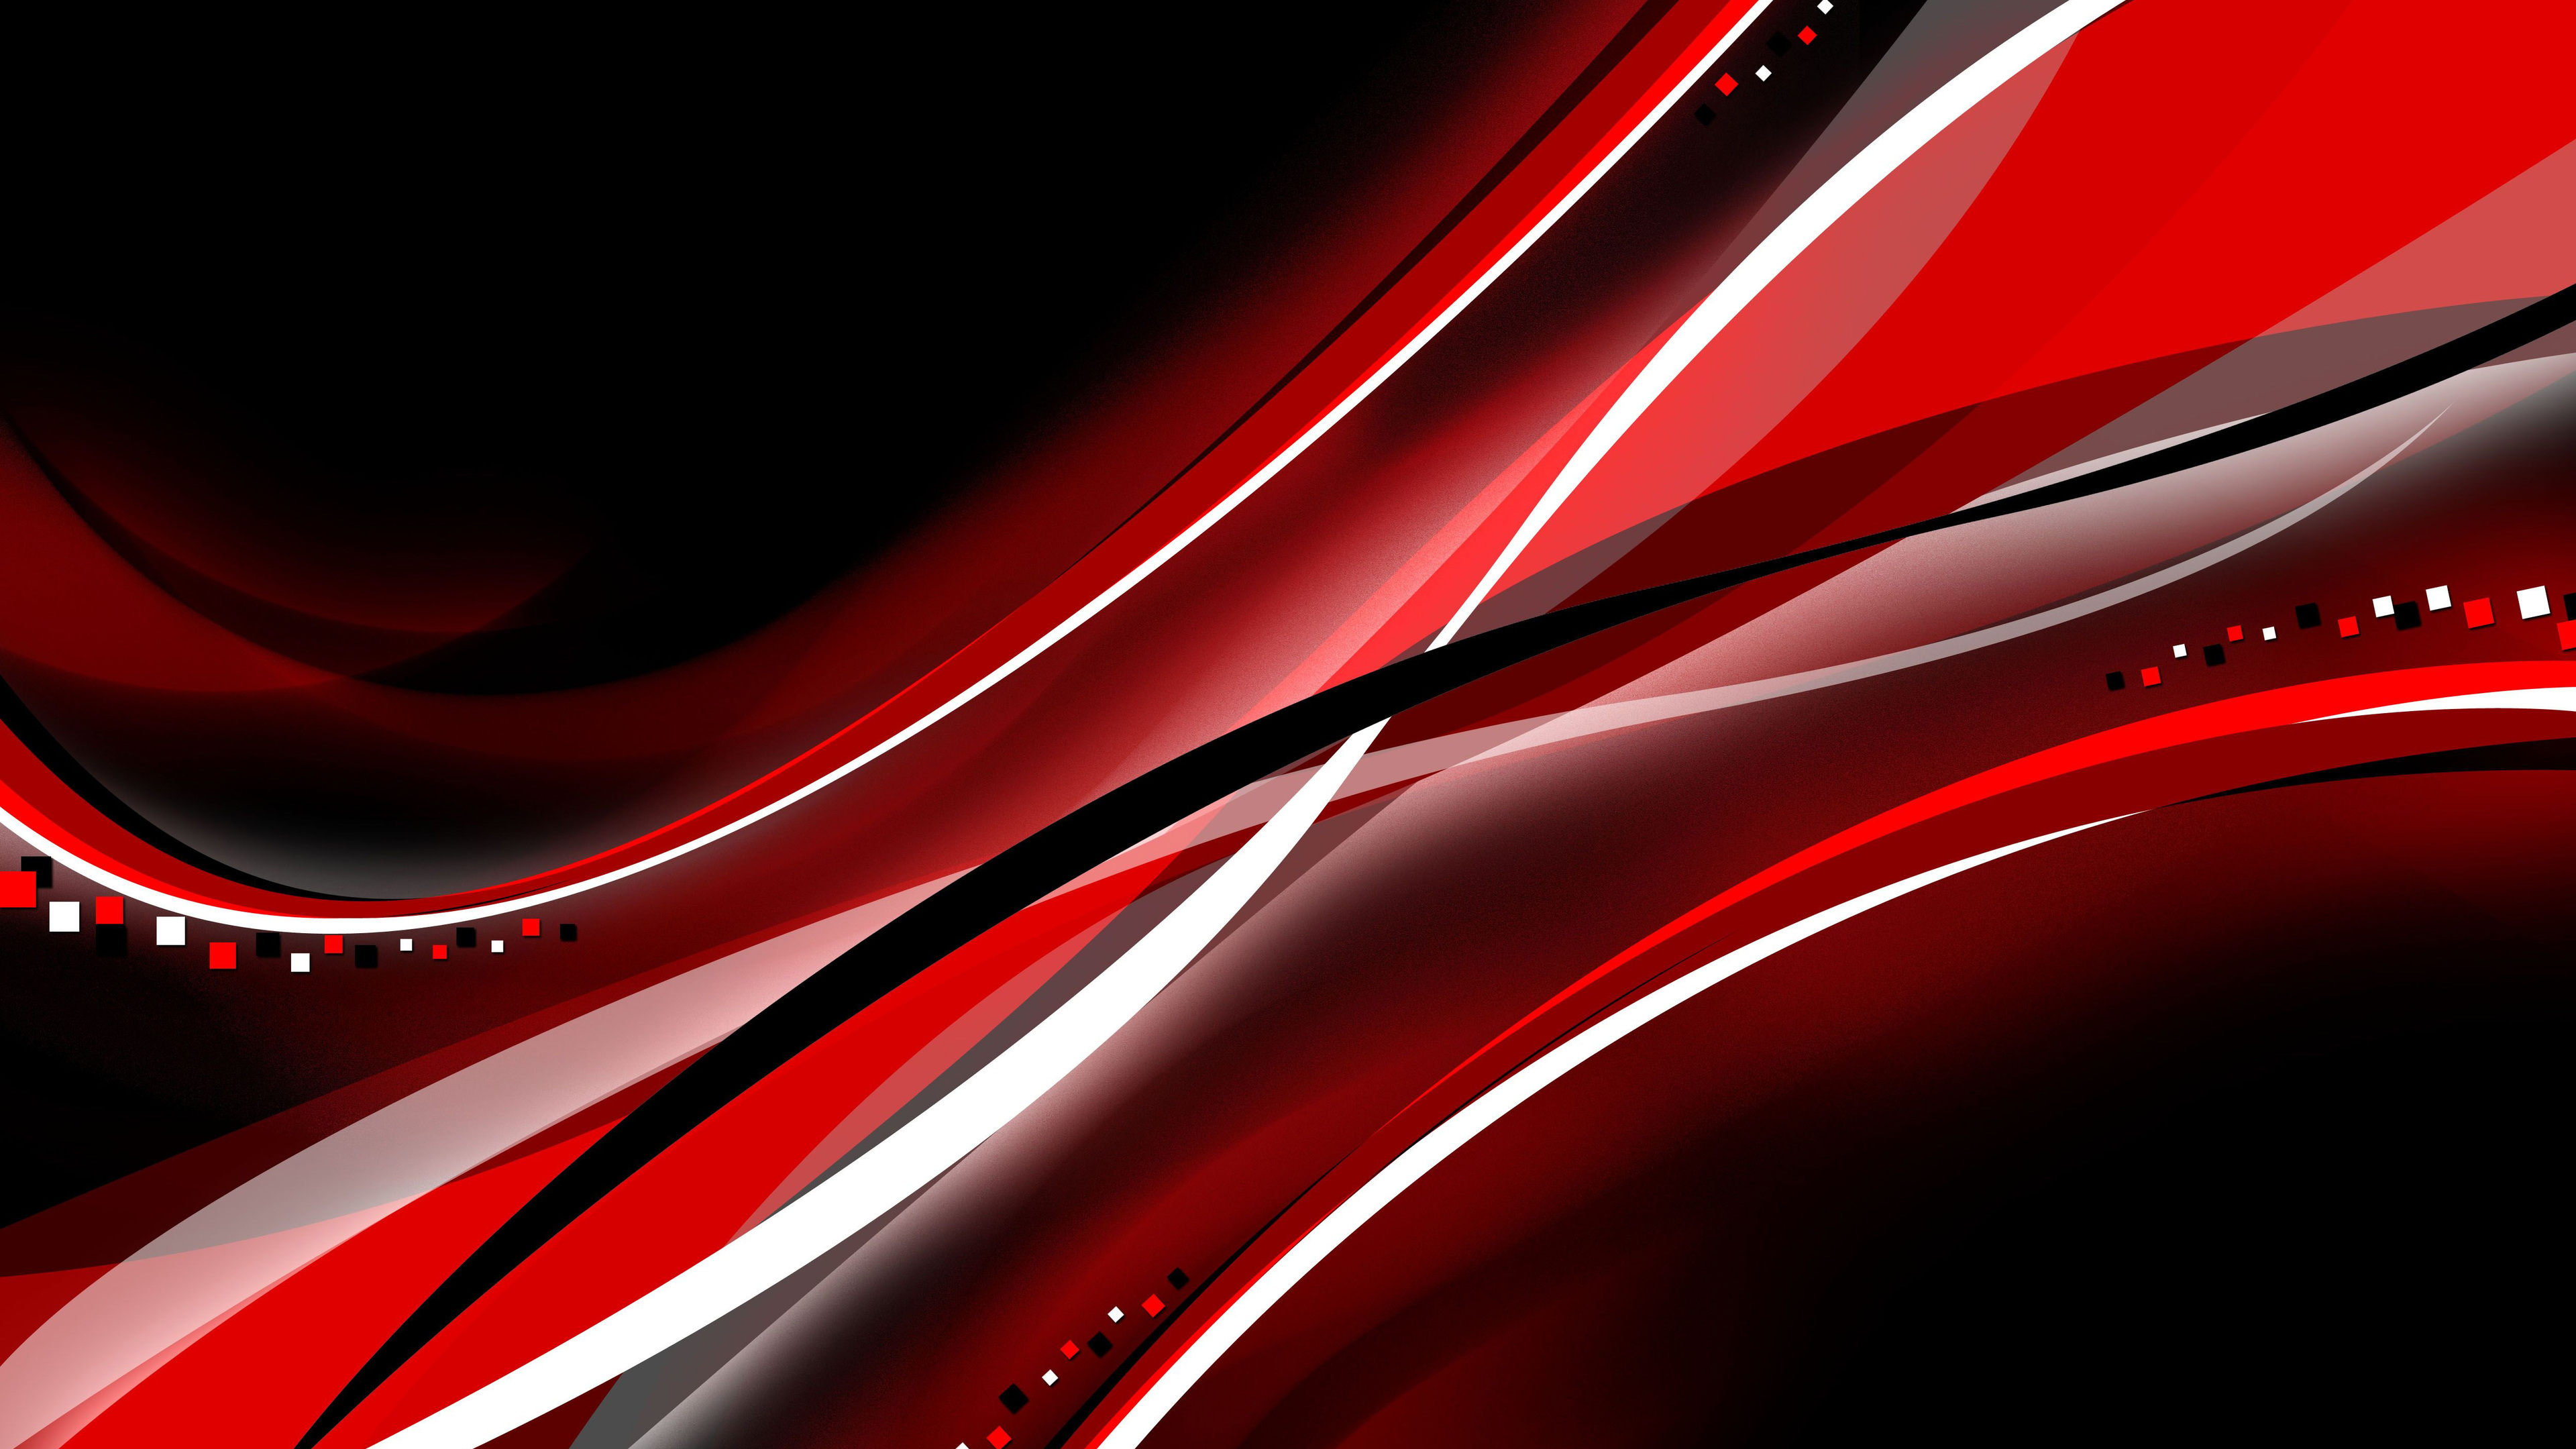 Red Black Color Interval Abstract 4k red wallpapers, hd ...